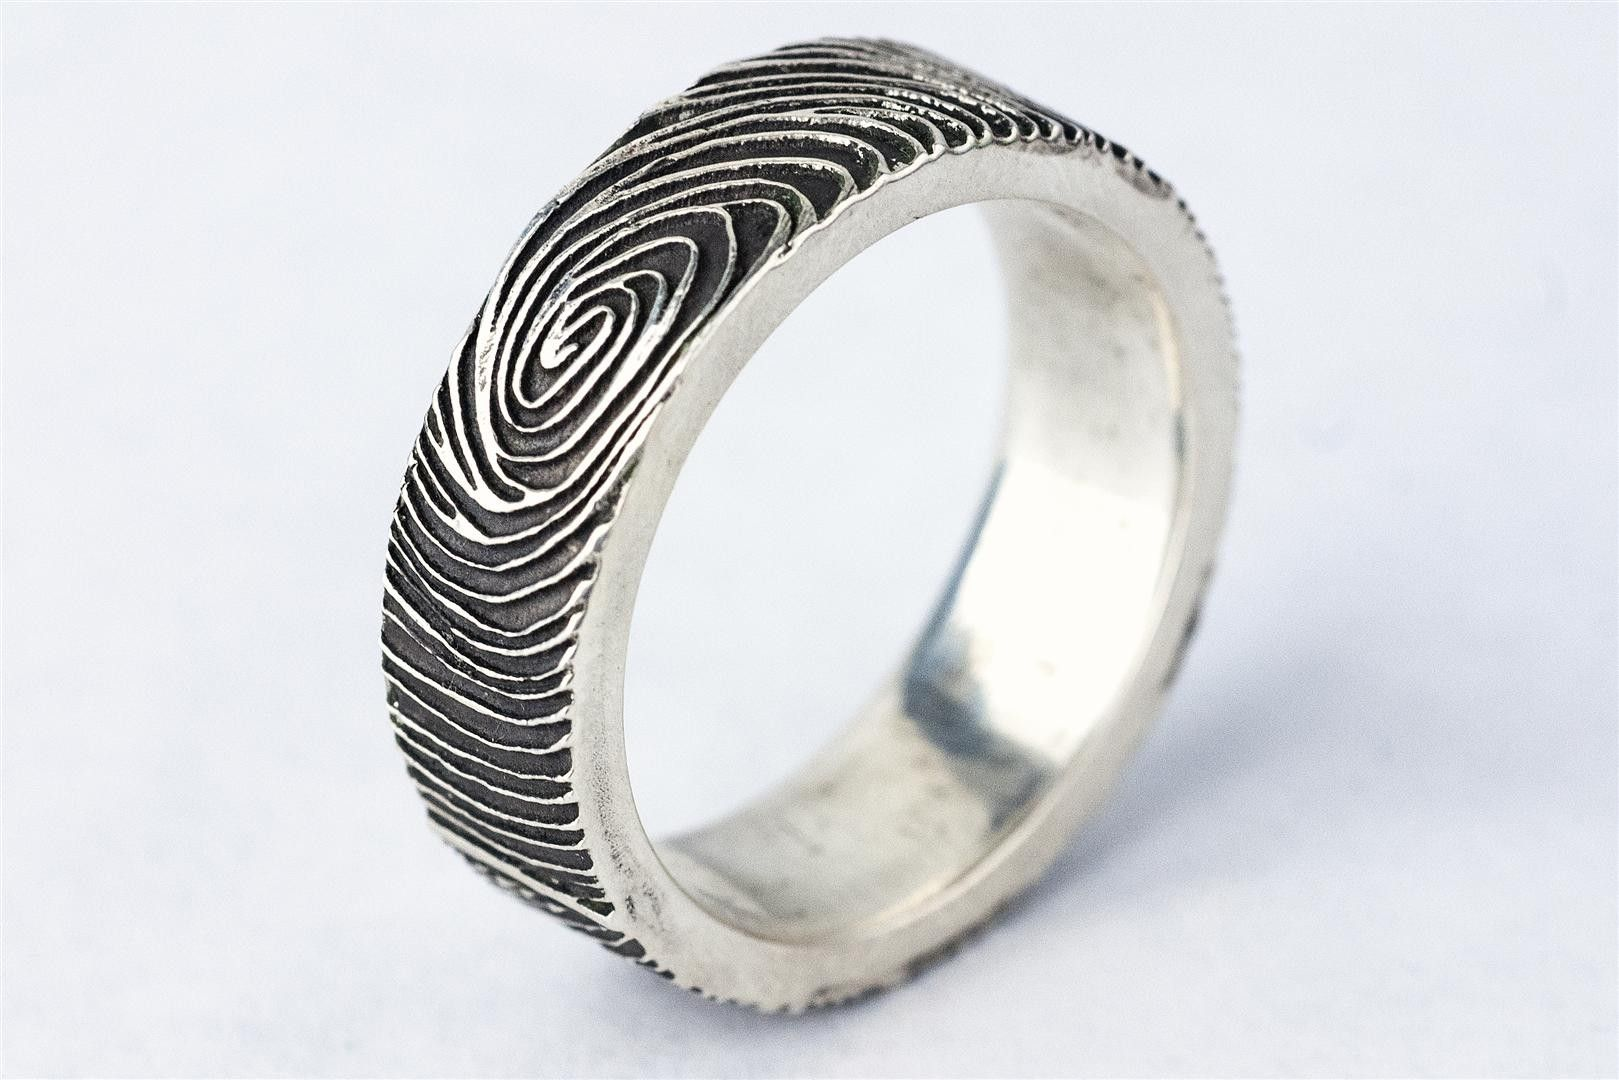 custom made custom fingerprint ring wedding band personalized sterling silver jewelry - Mud Tire Wedding Rings